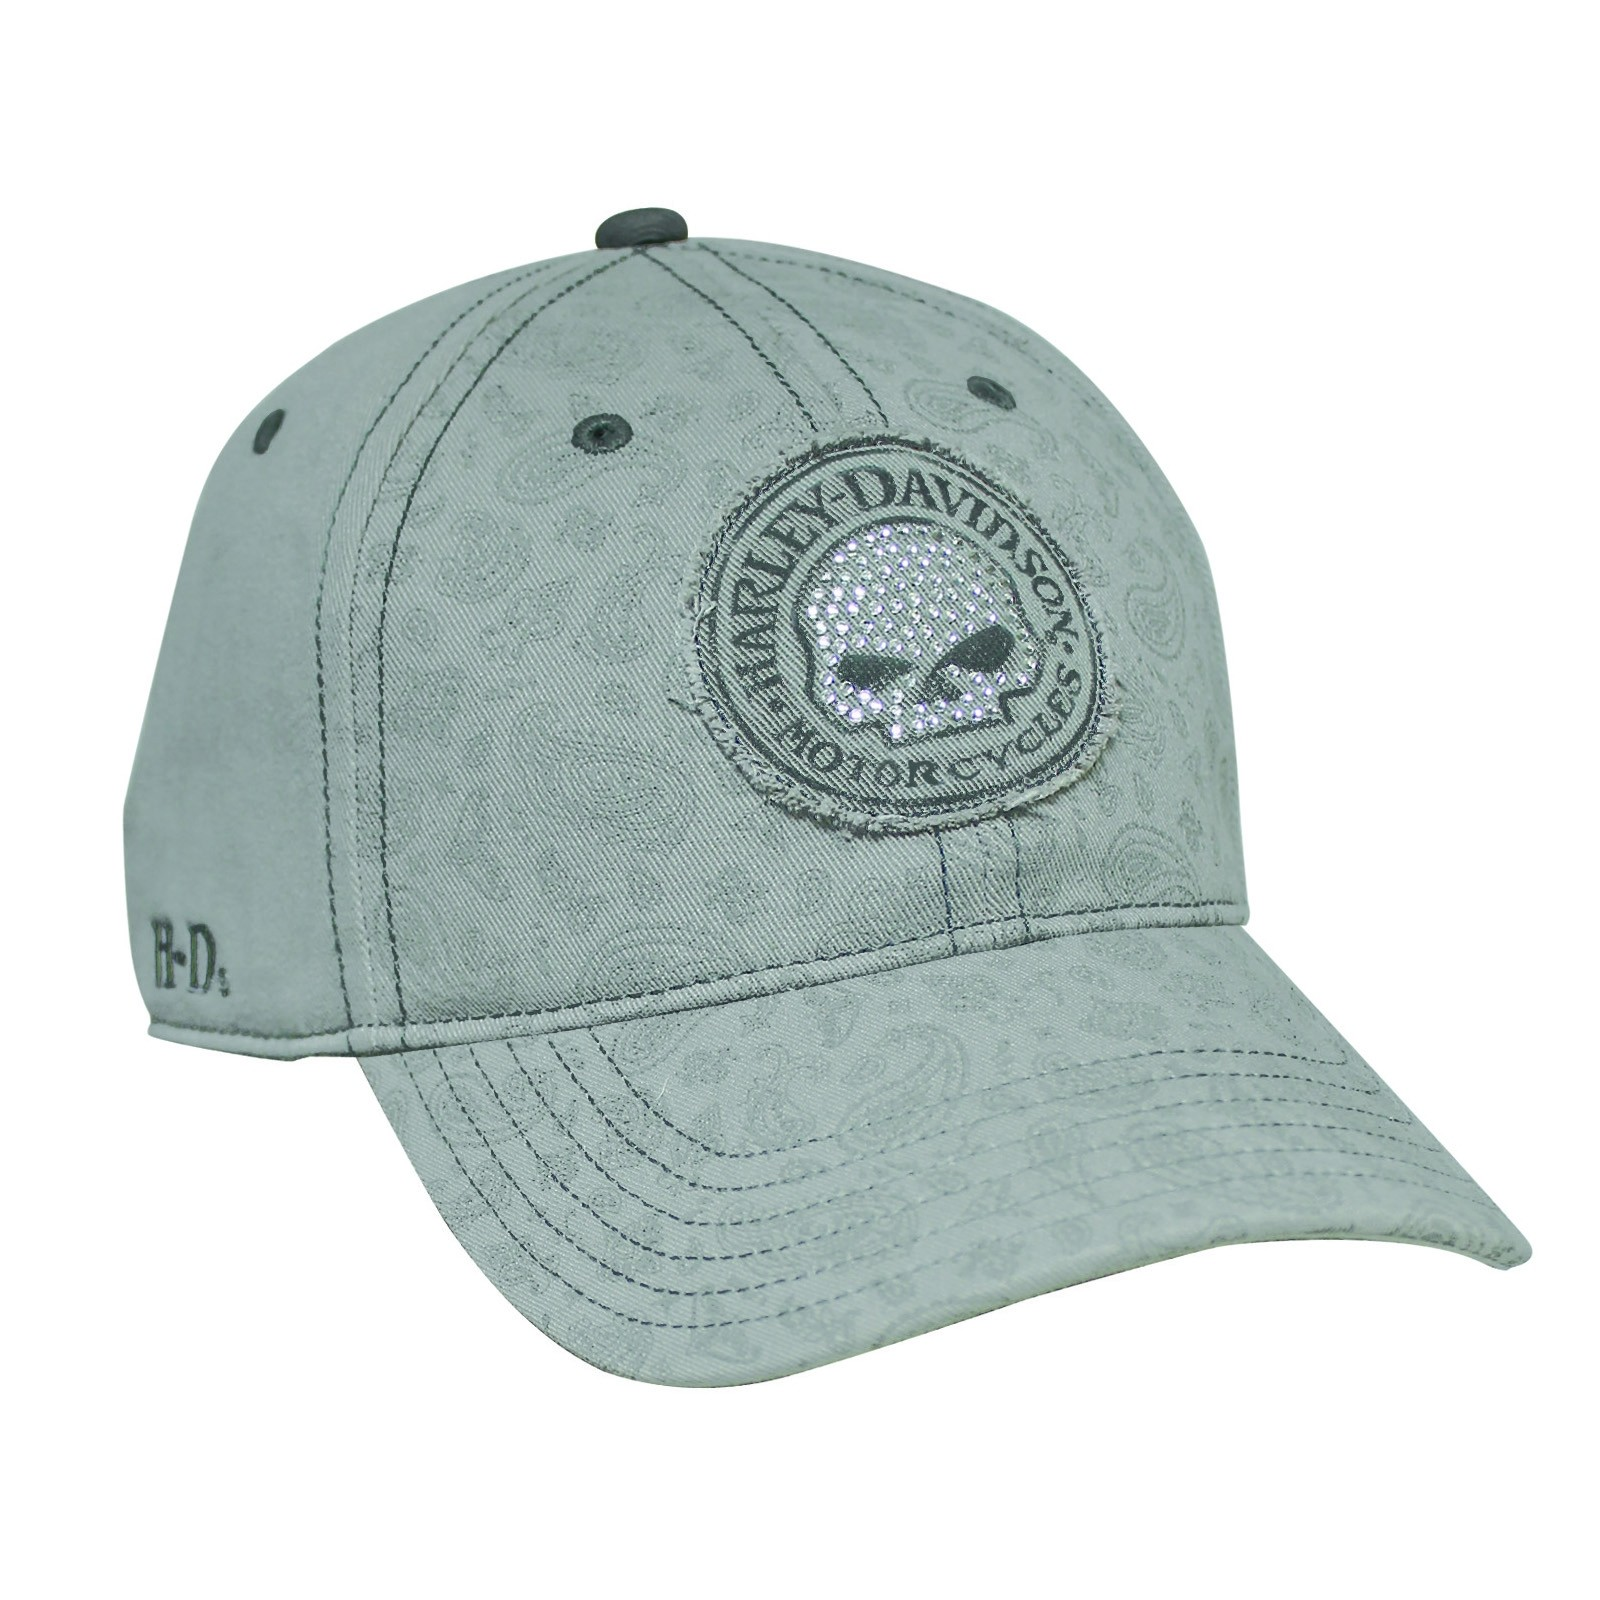 Harley-Davidson Women's Adjustable Closure Ballcap - Overseas Tour | Hubcap